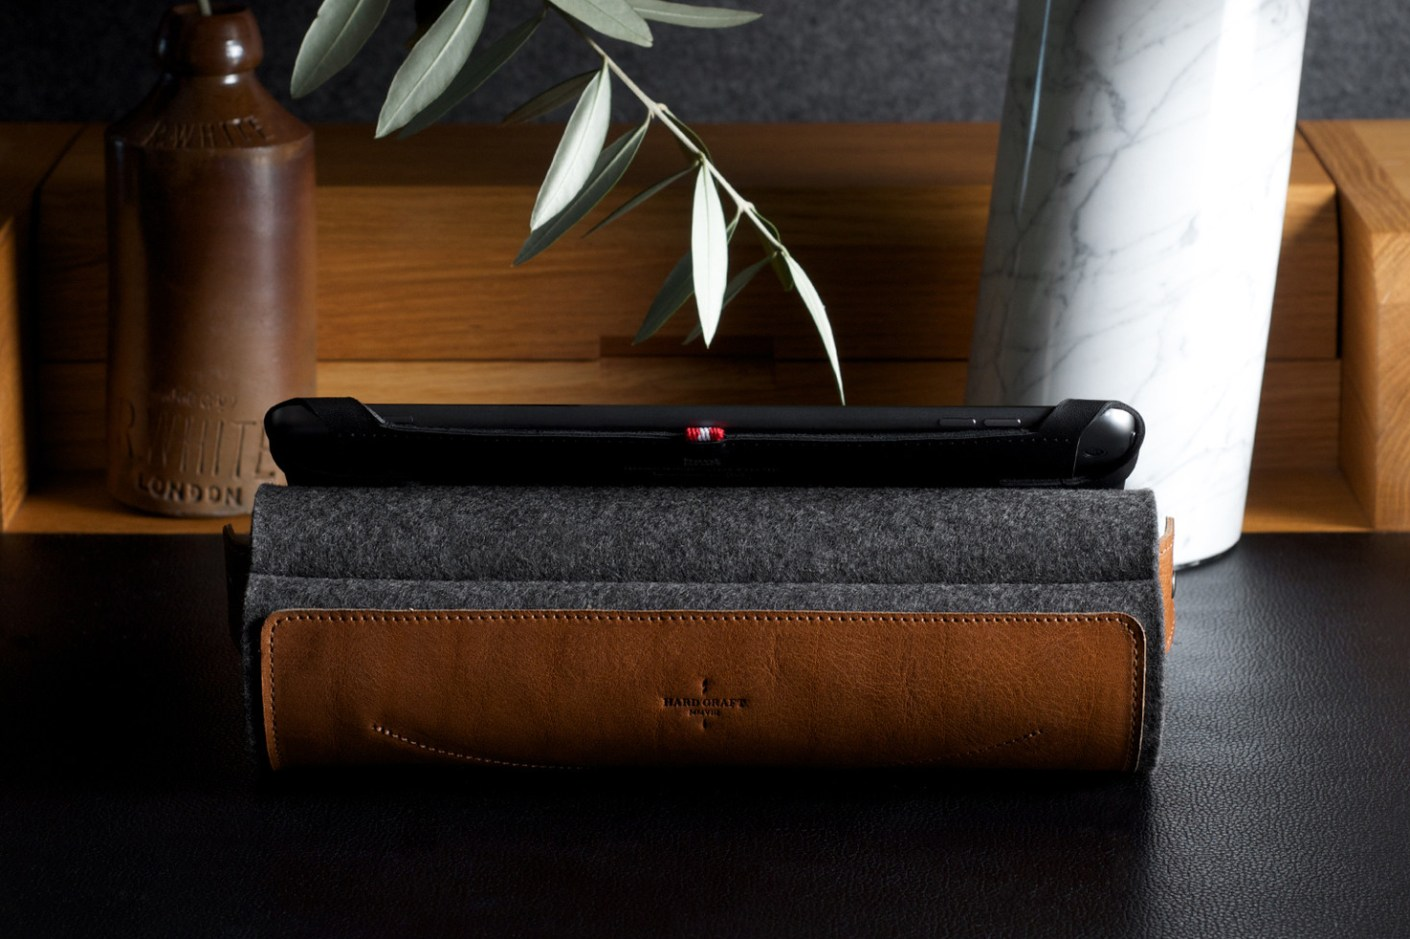 Image of hard graft iPad Air Tilt Case and Stand